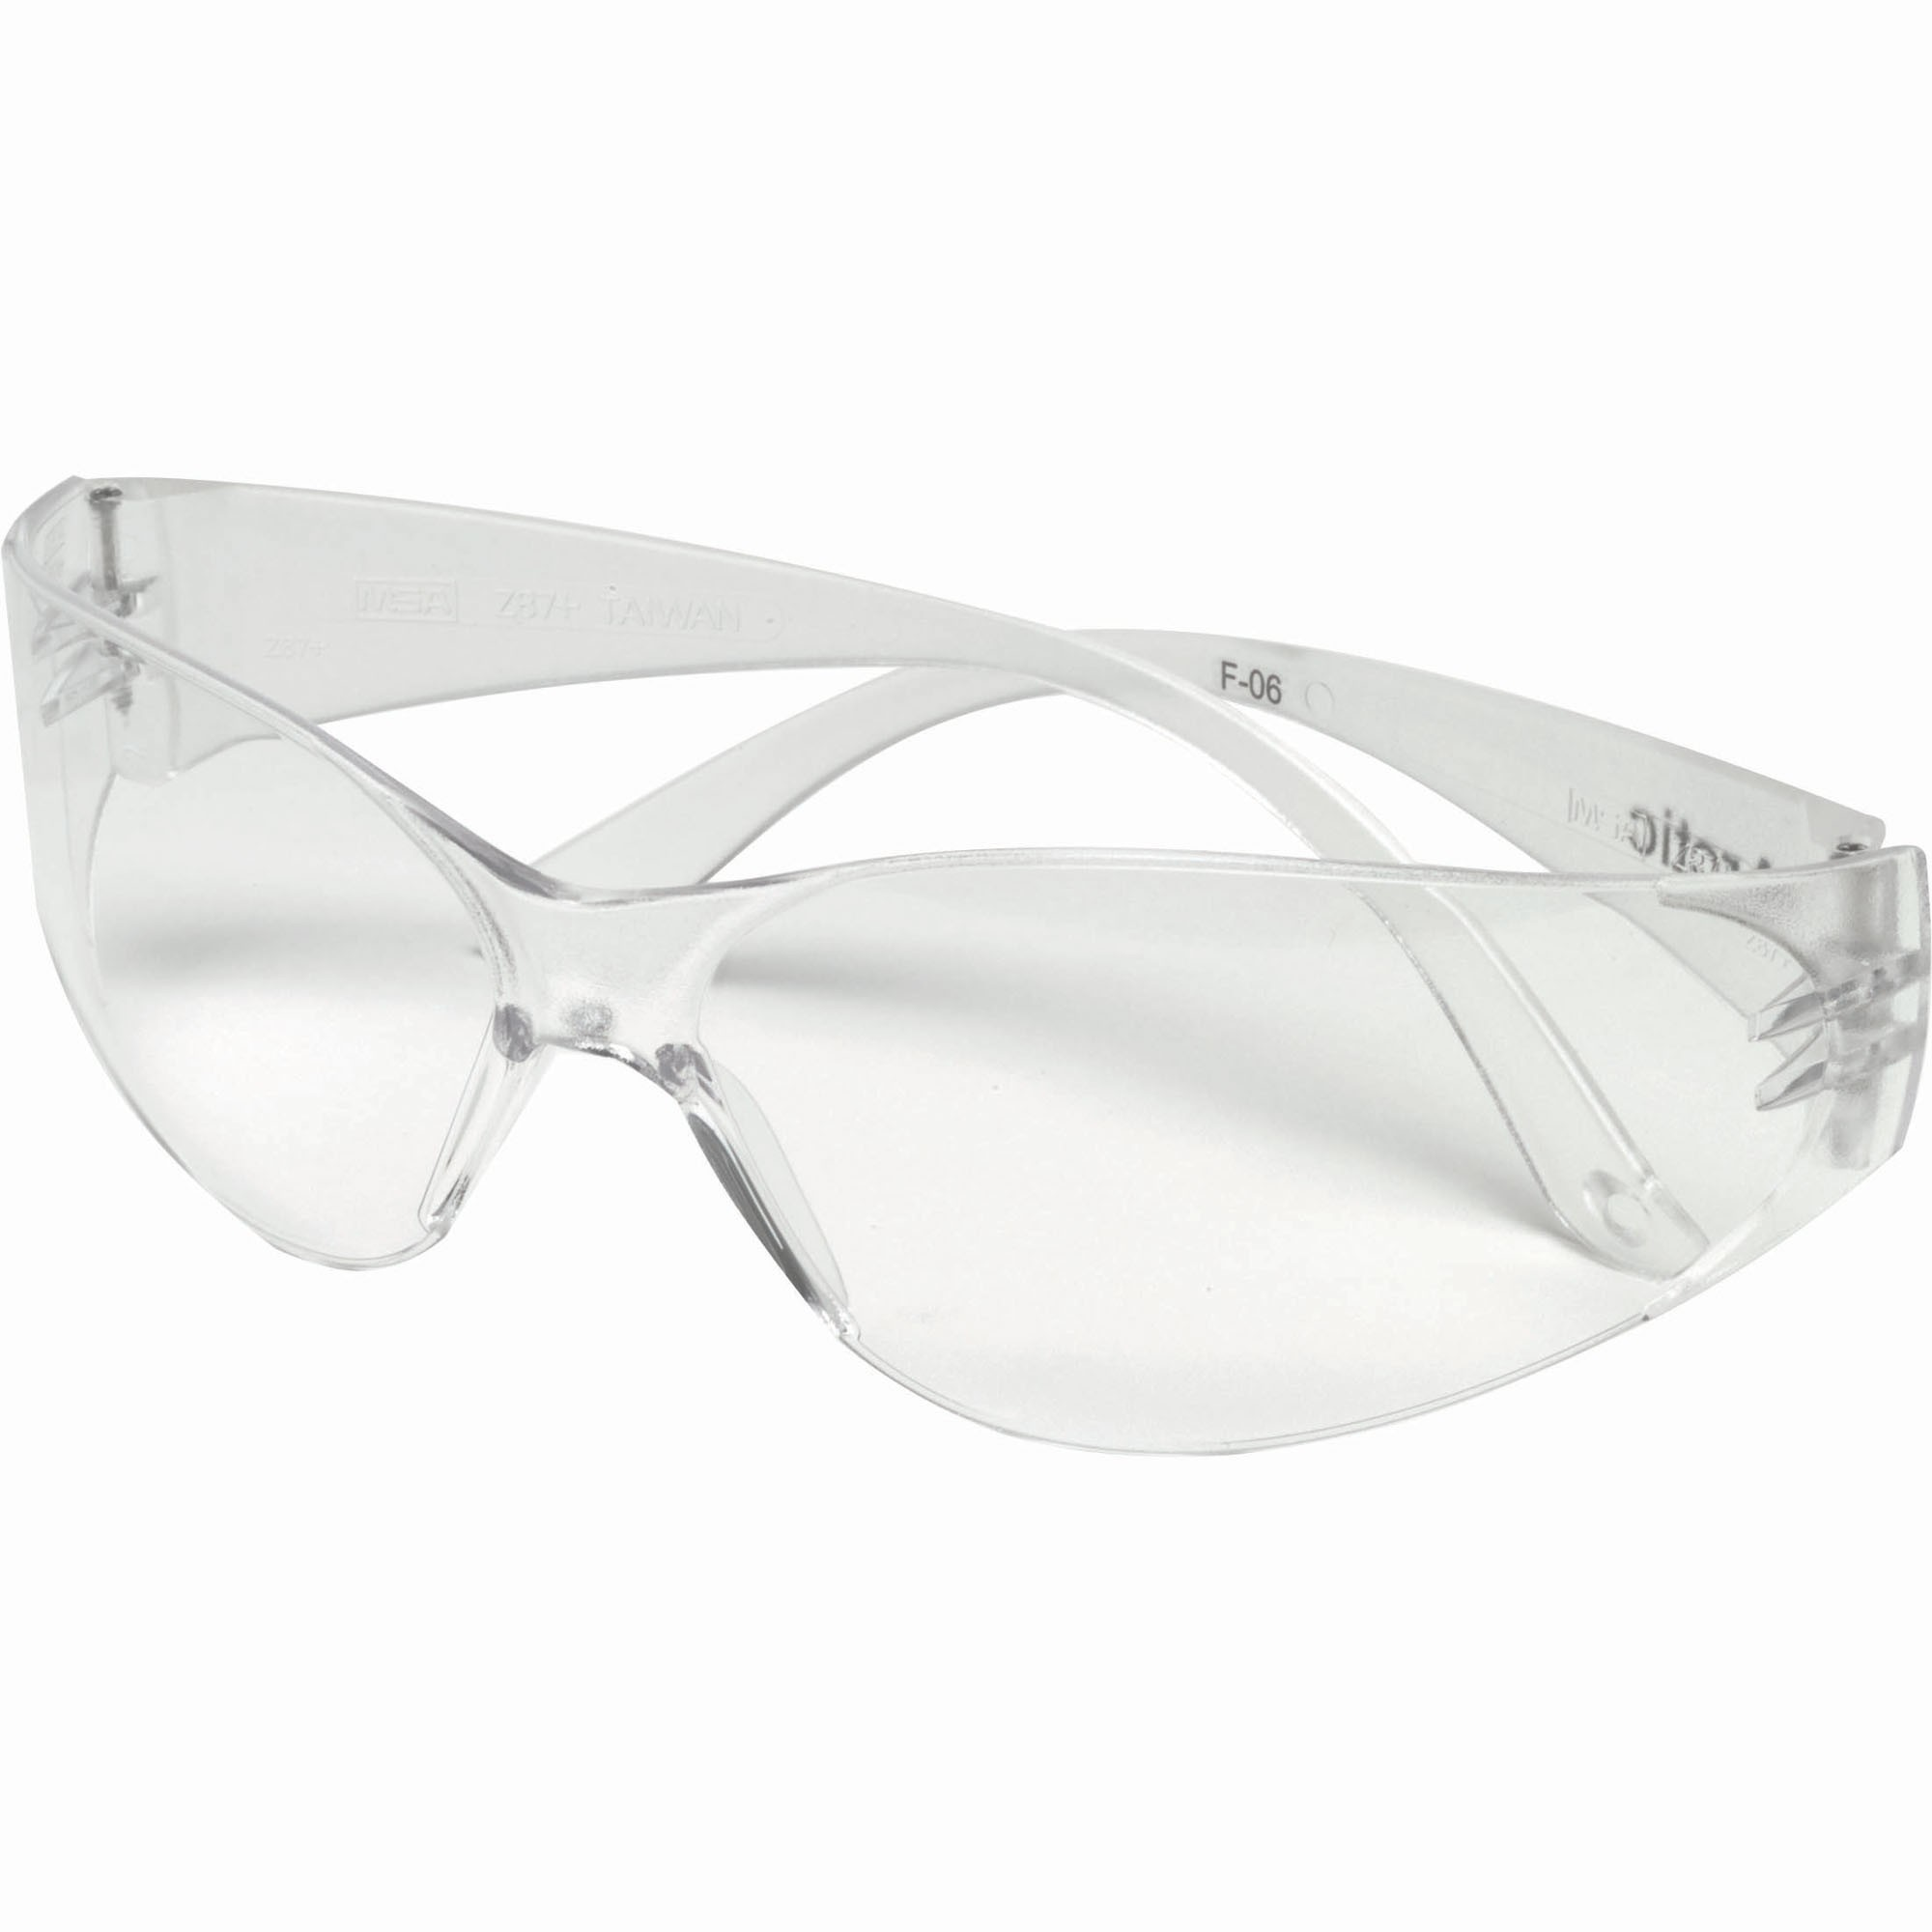 msa 697514 arctic safety glasses clear frame clear